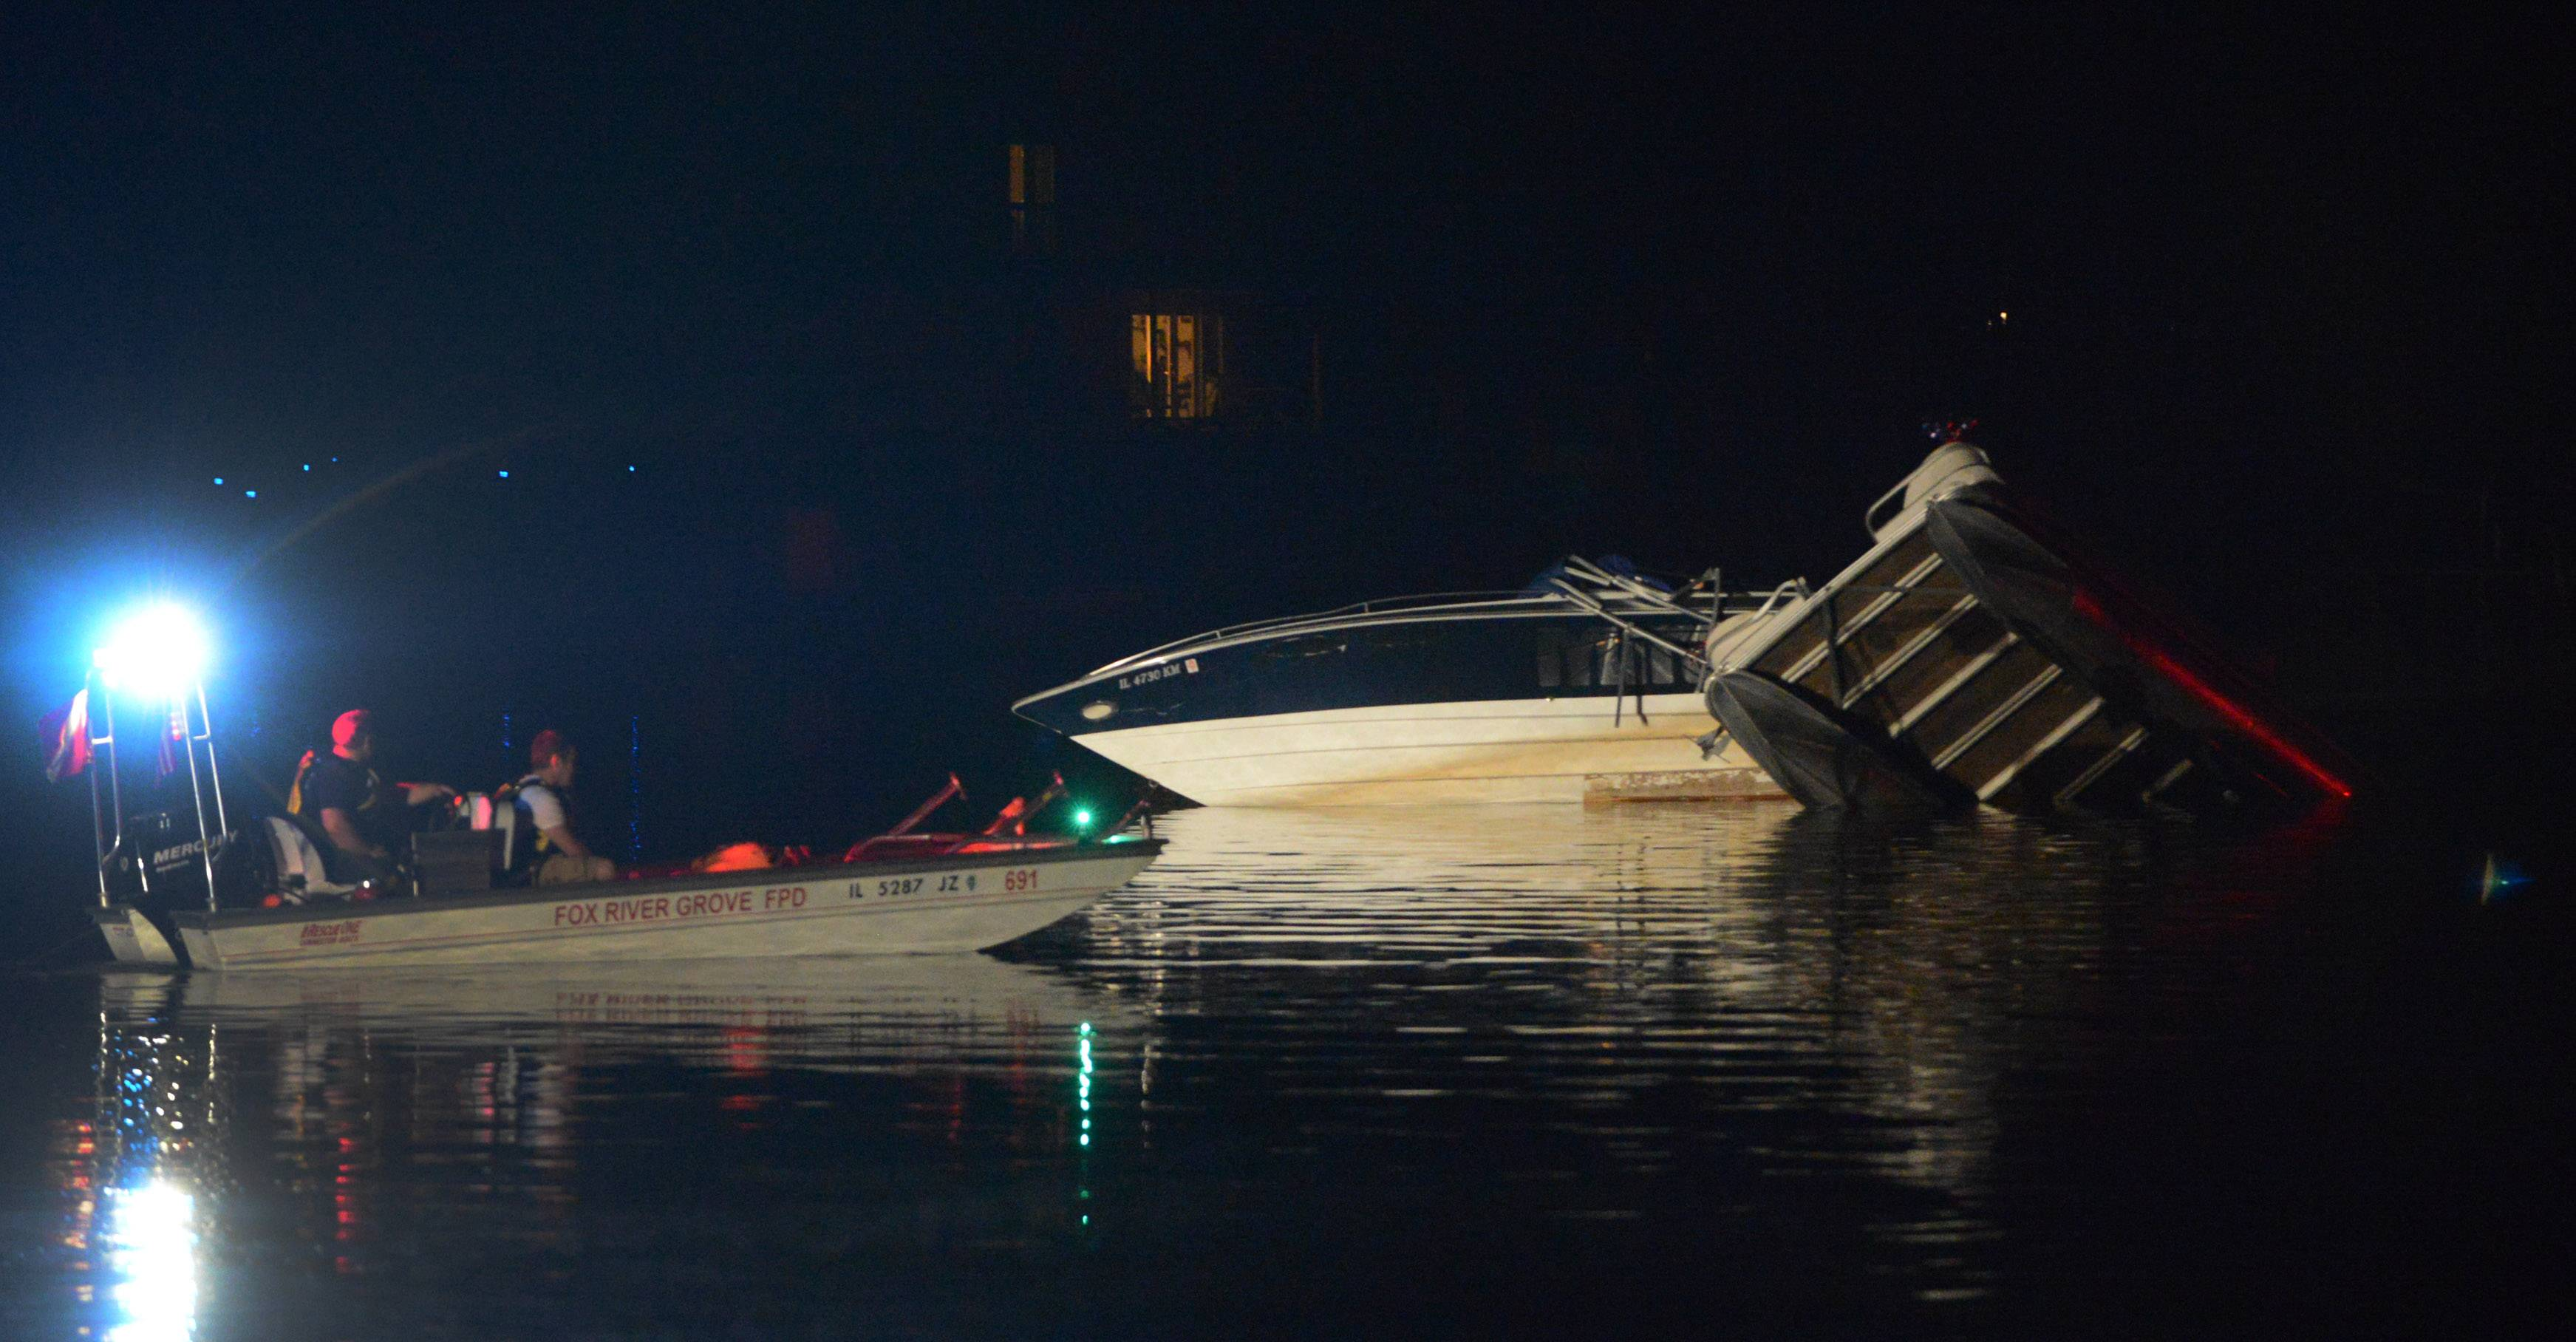 A pontoon boat sits partly submerged in the Fox River after a collision Saturday night involving a speed boat just off Barrington Harbor in Lake Barrington. Illinois Department of Natural Resources police said Monday that alcohol played a role in the crash, which sent four people to the hospital.